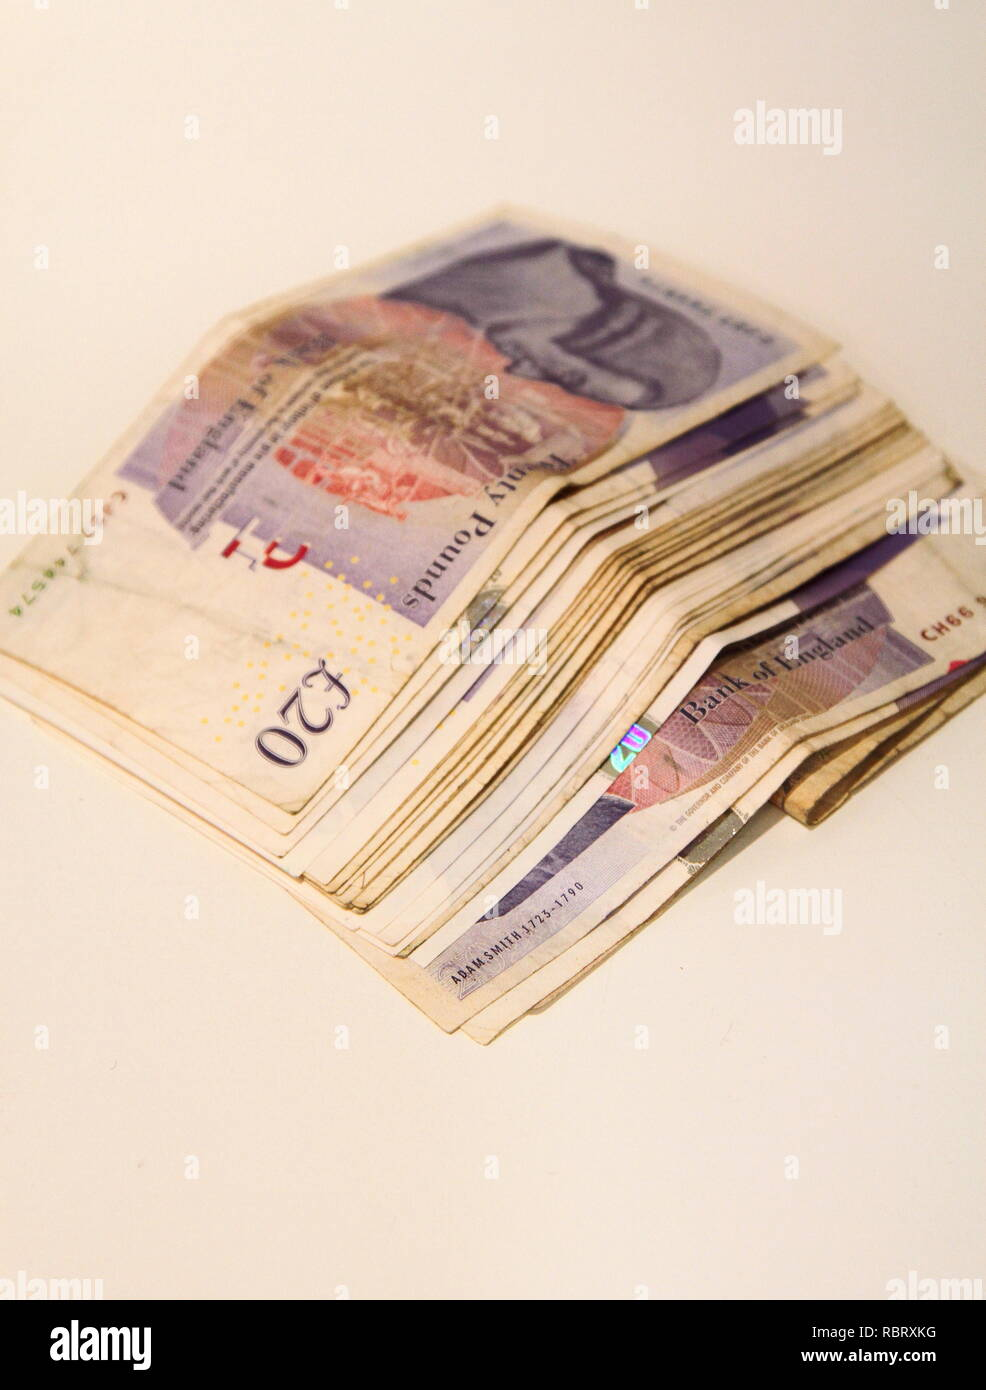 Bank of England bank notes. Cash. Money. Stirling. Bank notes. Wonga. Wad. 20 pound notes. Money of England. Currency. Currency of the United Kingdom. Currency of Great Britain. - Stock Image